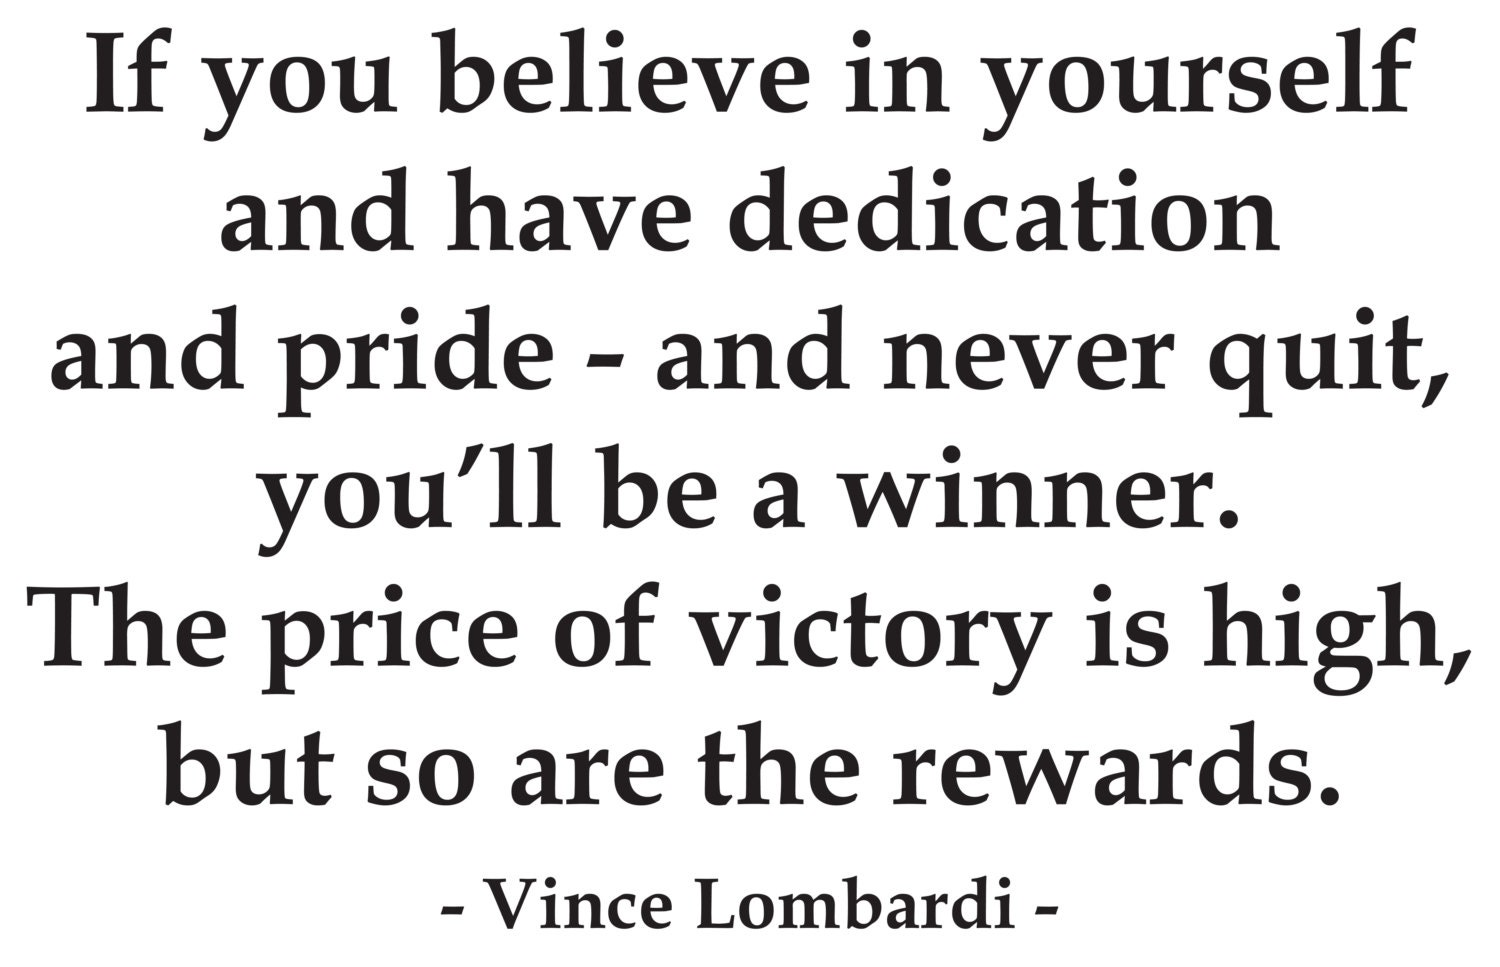 Believe In Yourself Vince Lombardi Vinyl Wall Quote